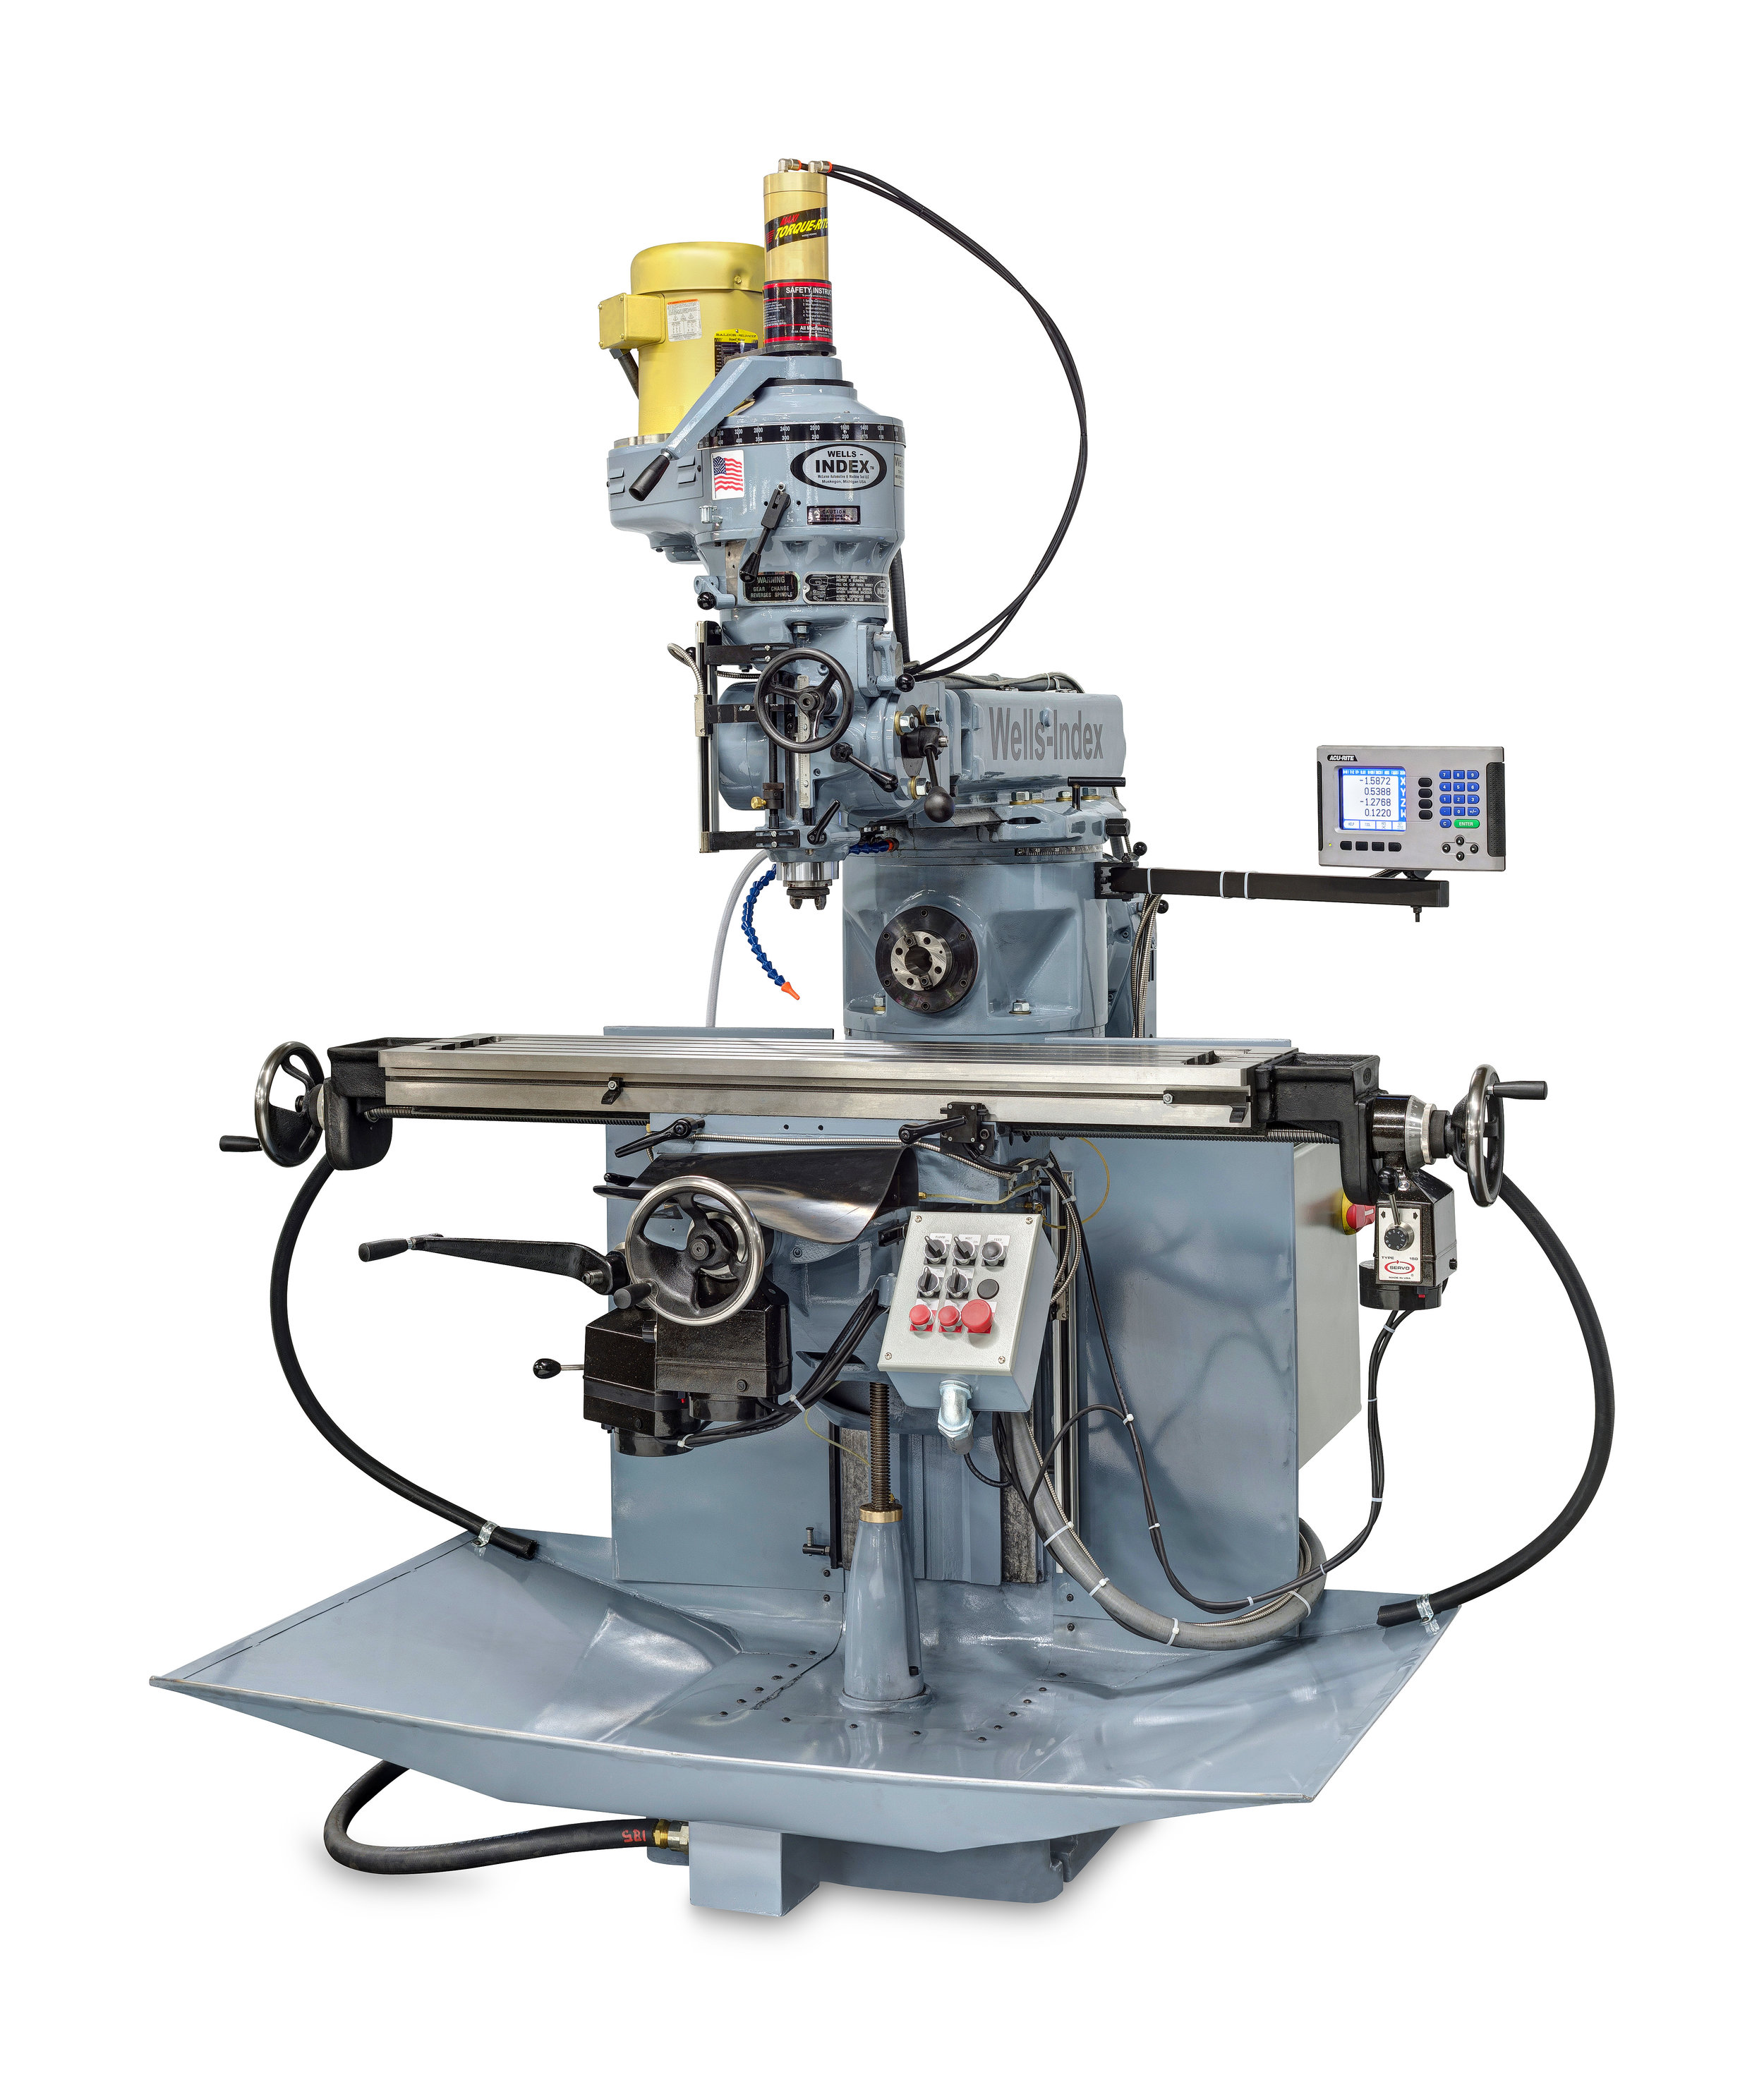 860 with Special electrics 4 axis Acurite DRO